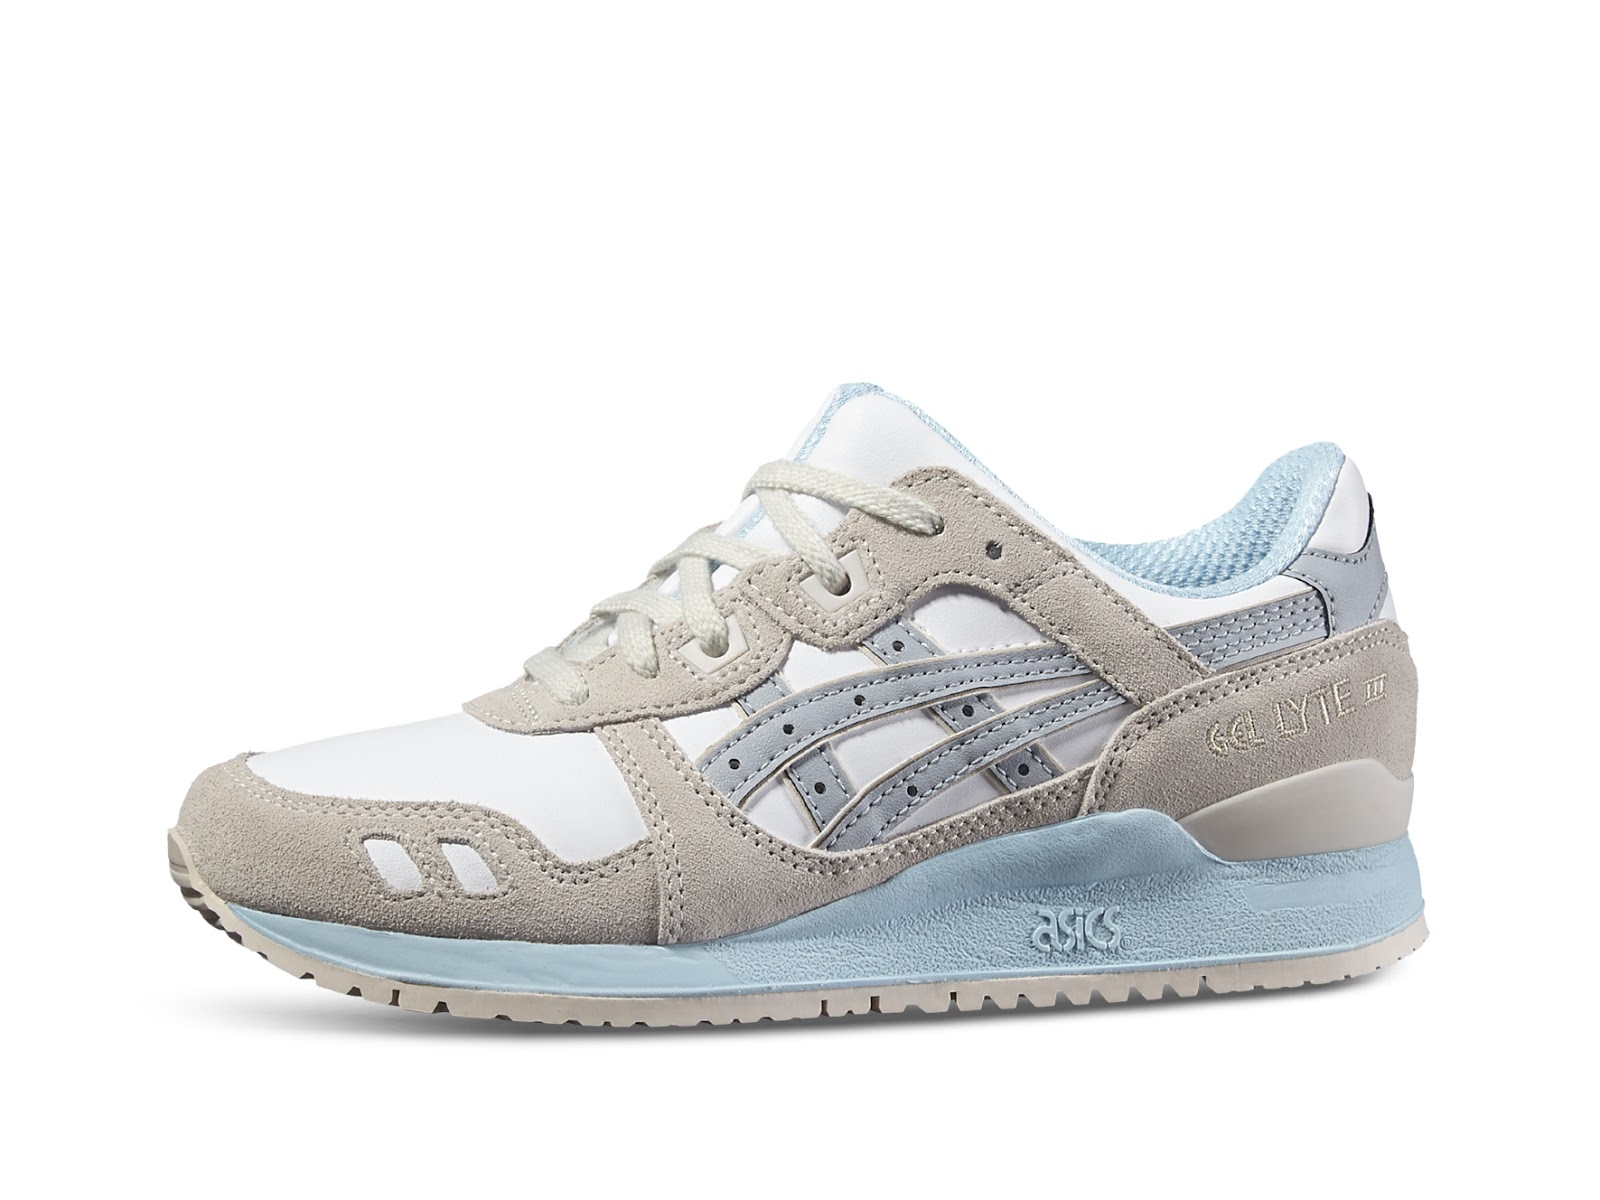 ASICS LIFESTYLE Chica